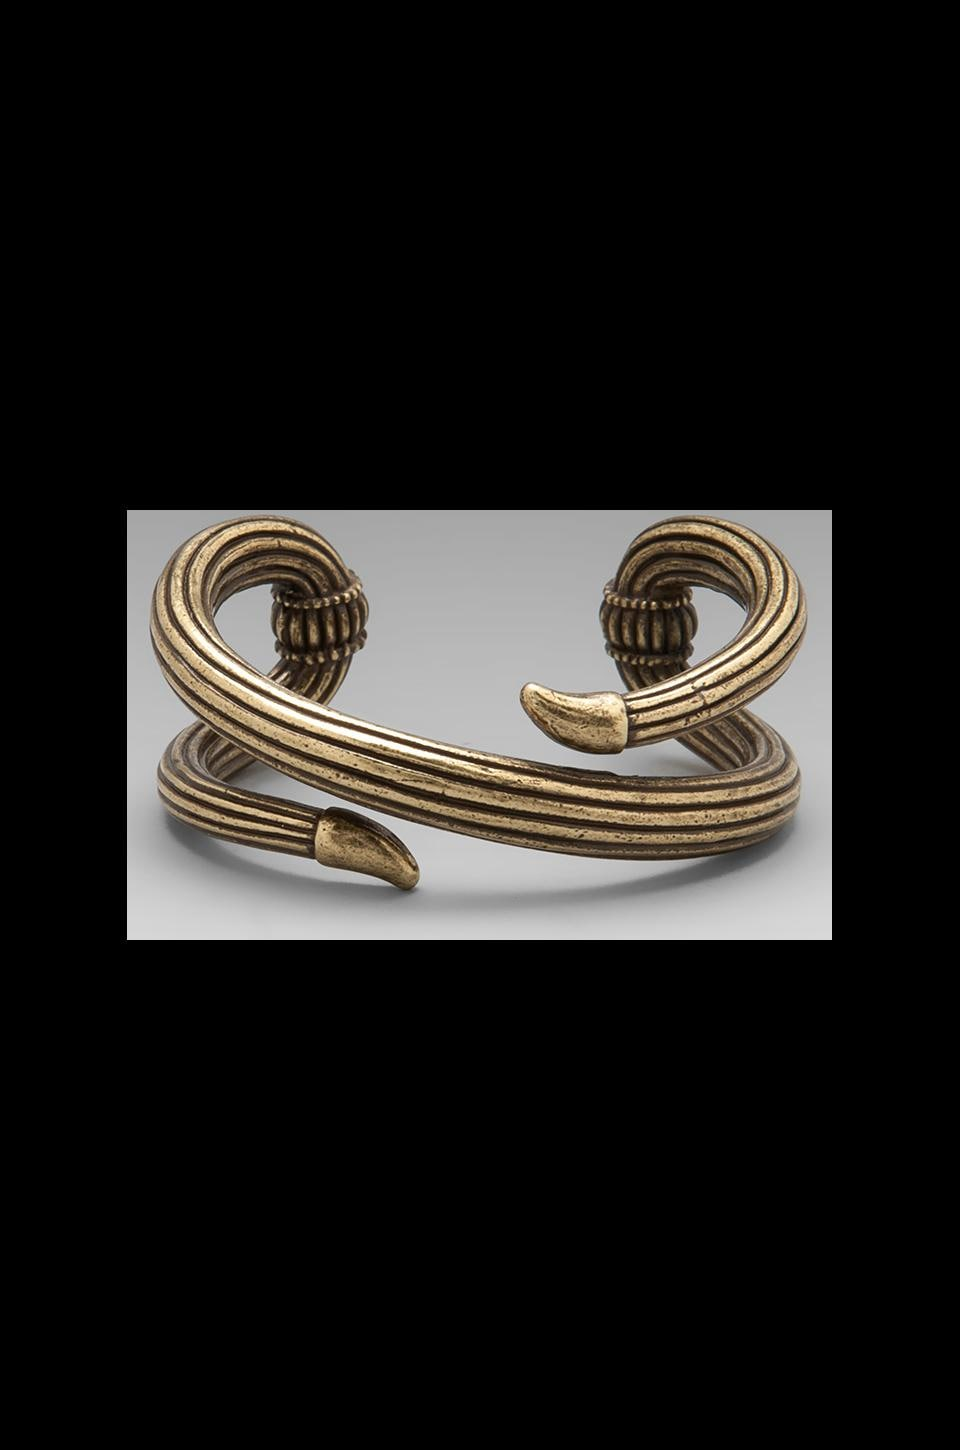 Giles & Brother Serpent Cuff in Antique Brass